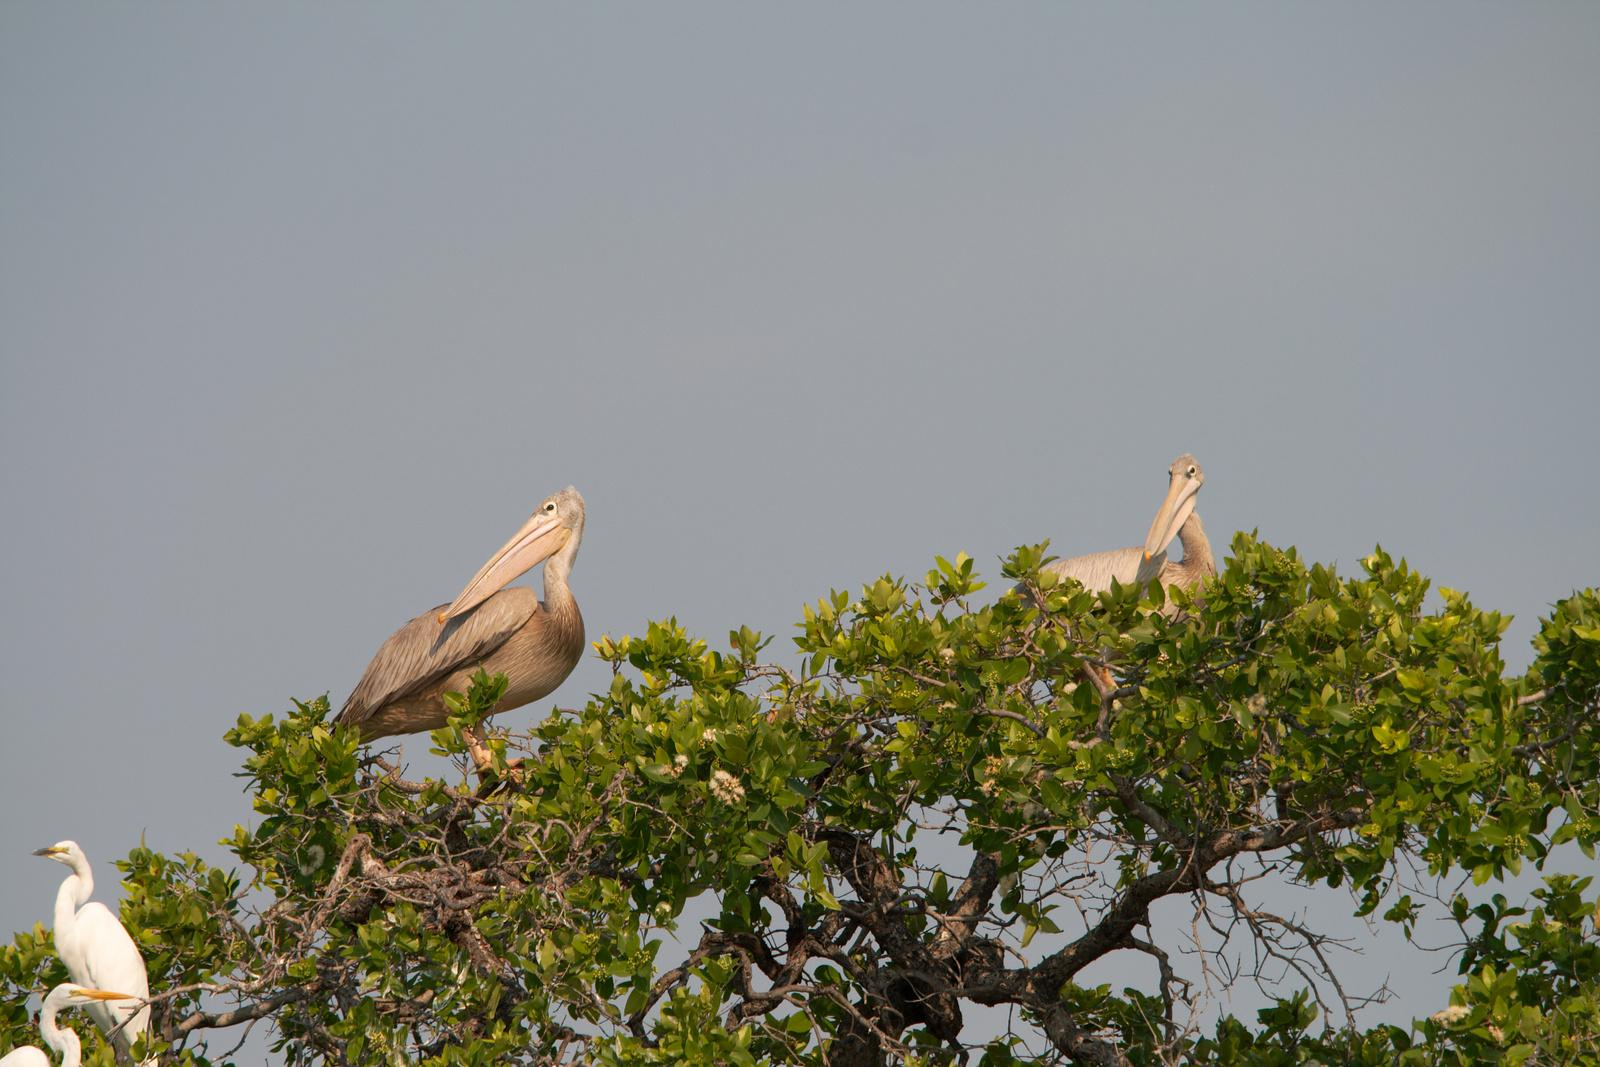 Pelicans in tree in Botswana